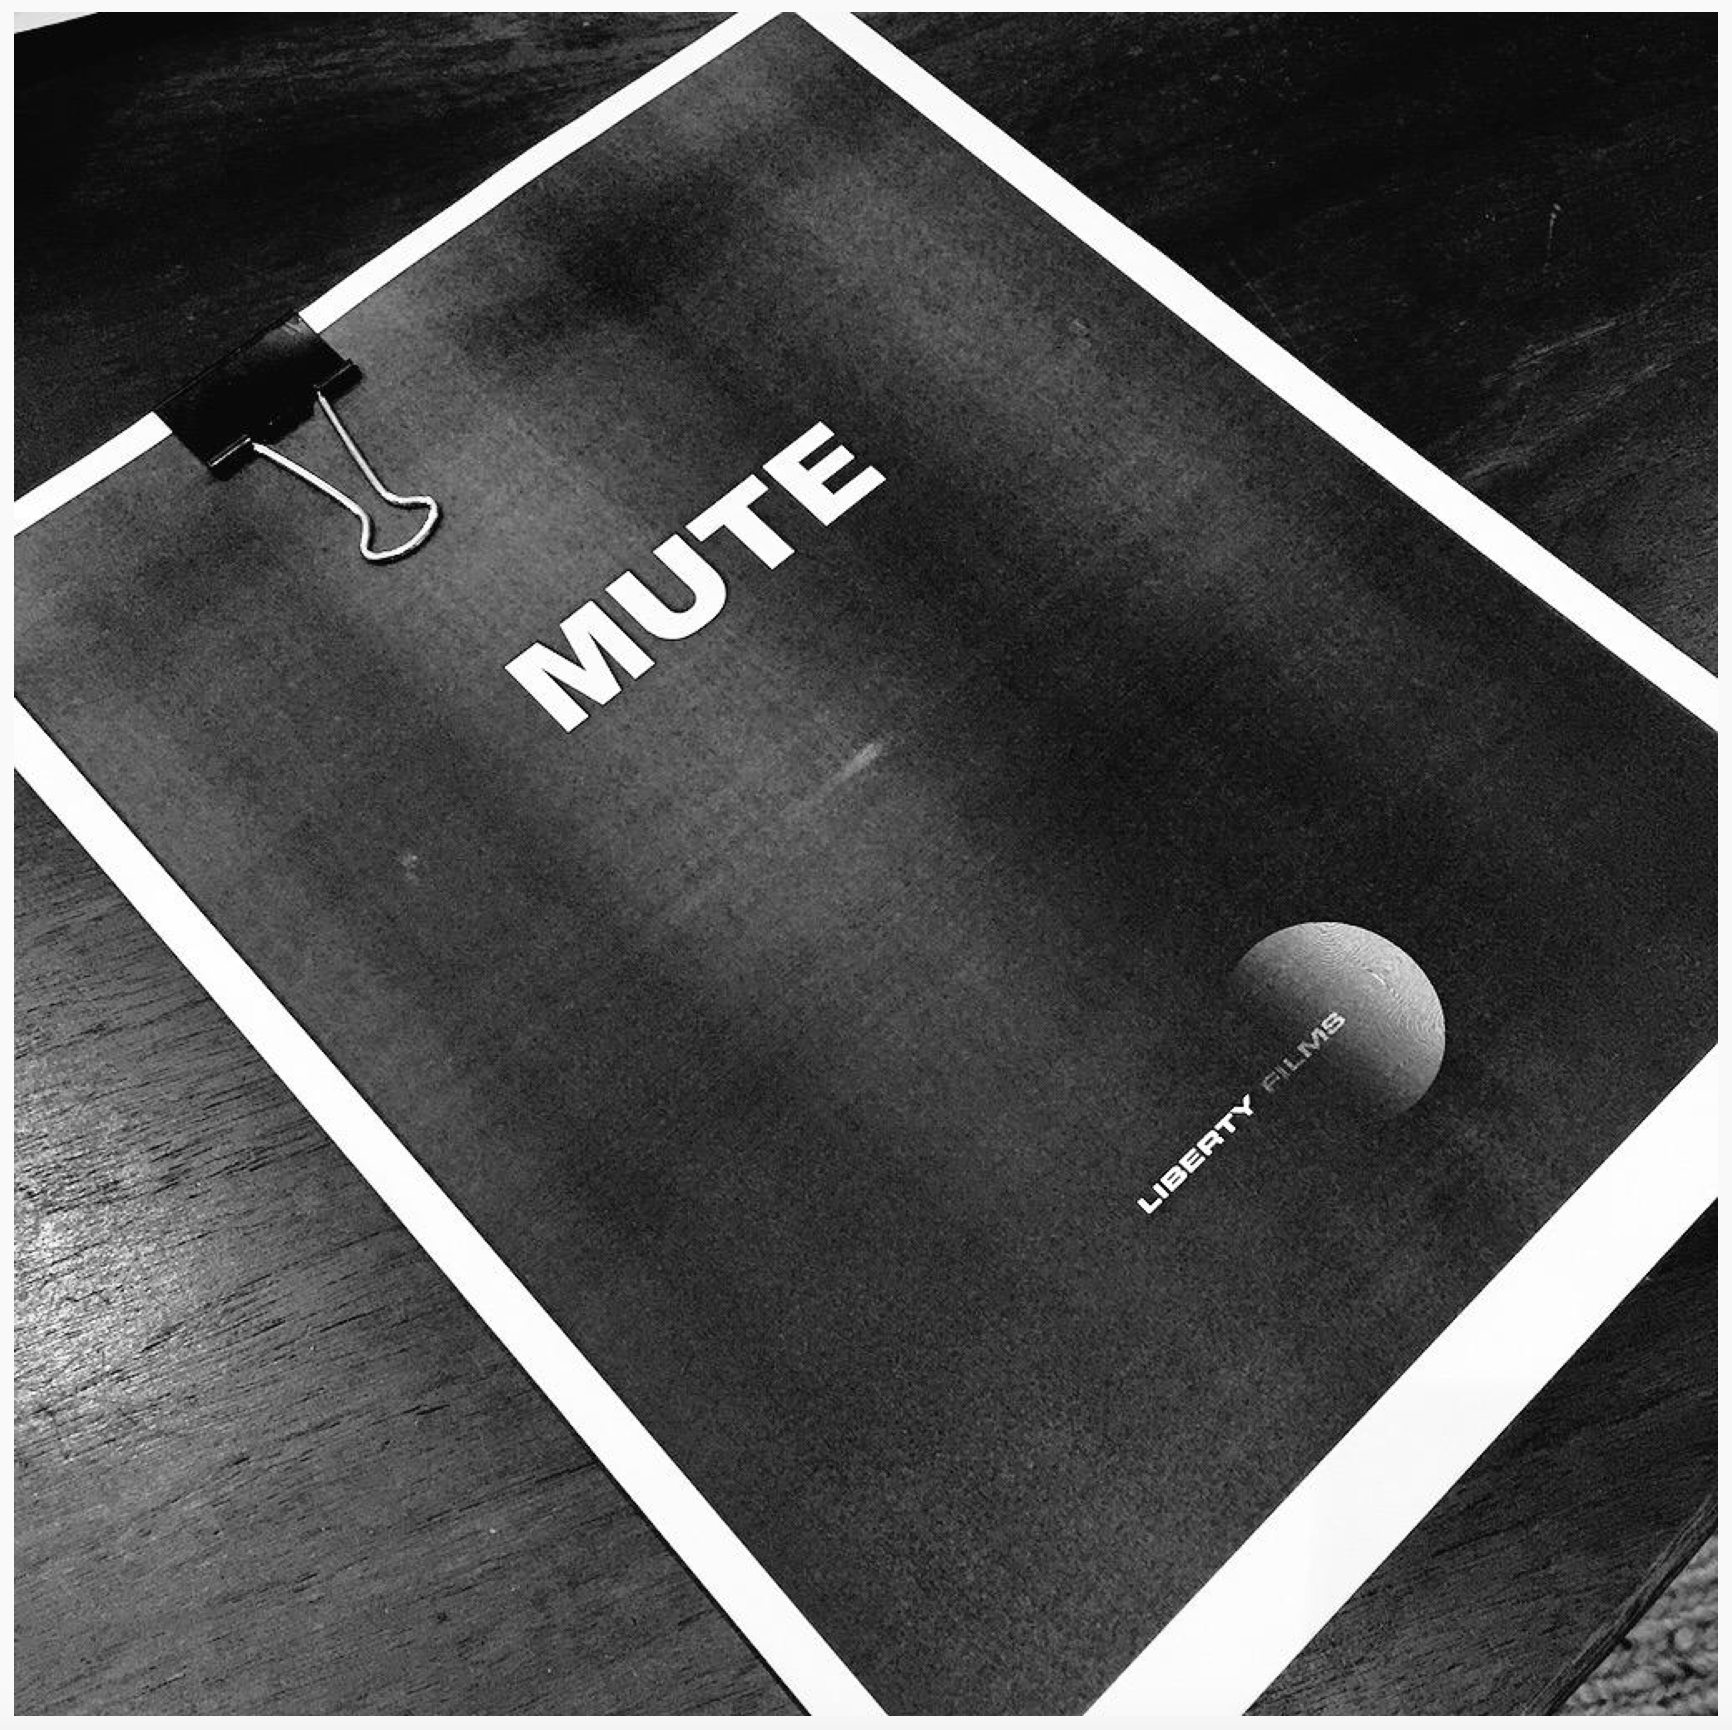 mute-script-pic-tweeted-by-duncan-jones